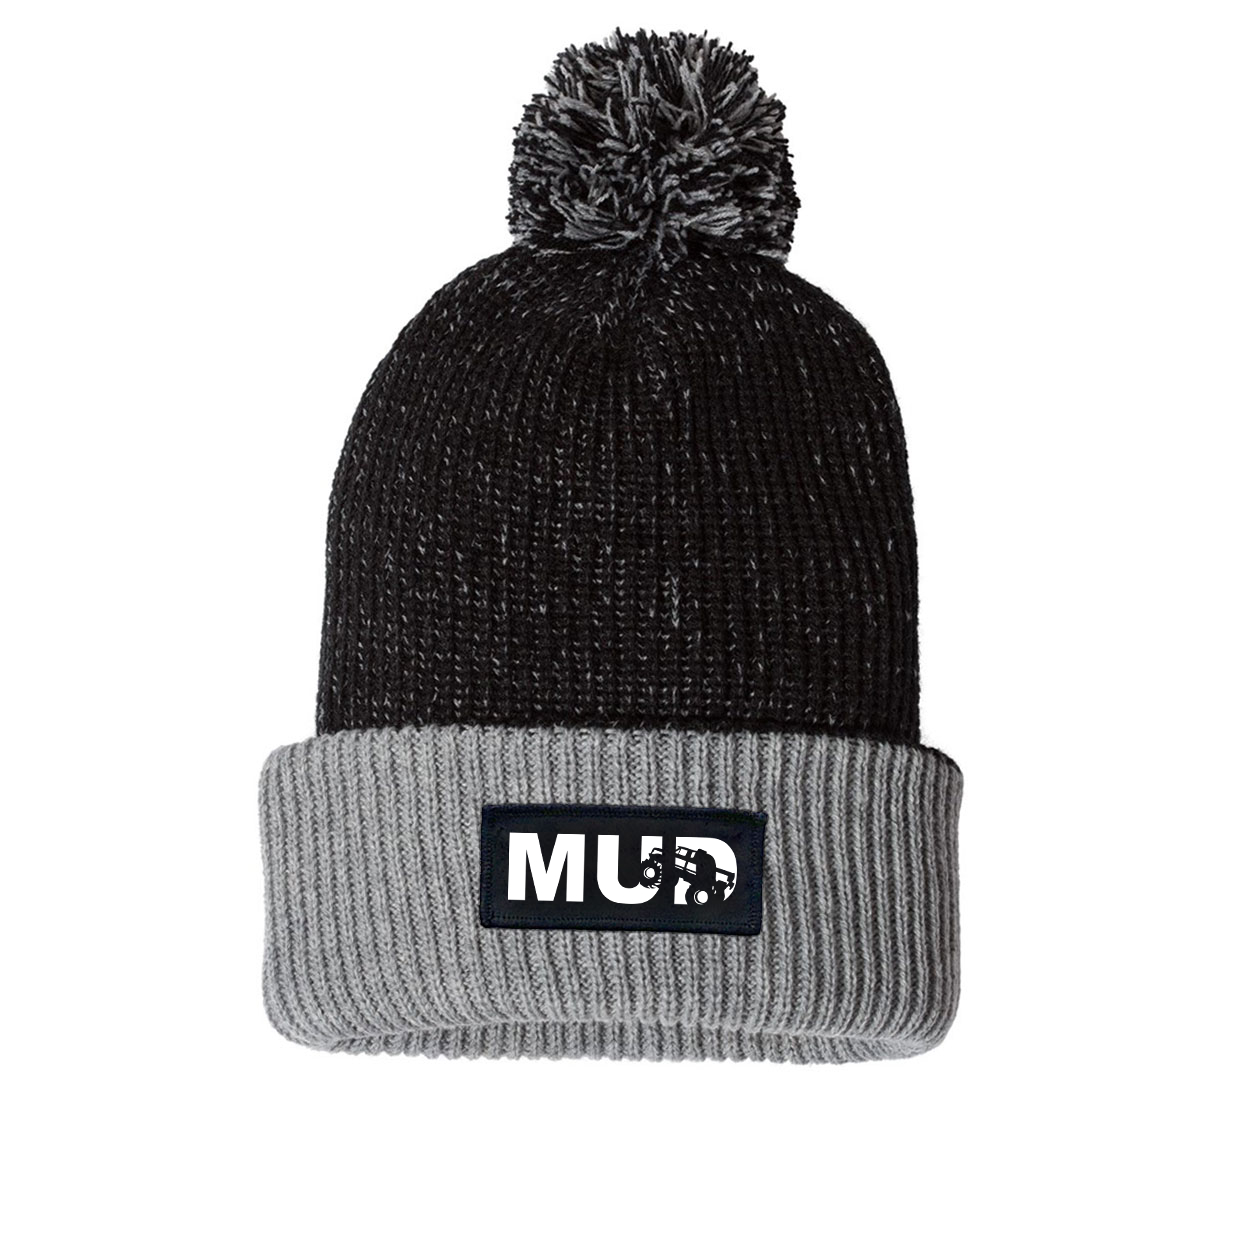 Mud Truck Logo Night Out Woven Patch Roll Up Pom Knit Beanie Black/Gray (White Logo)